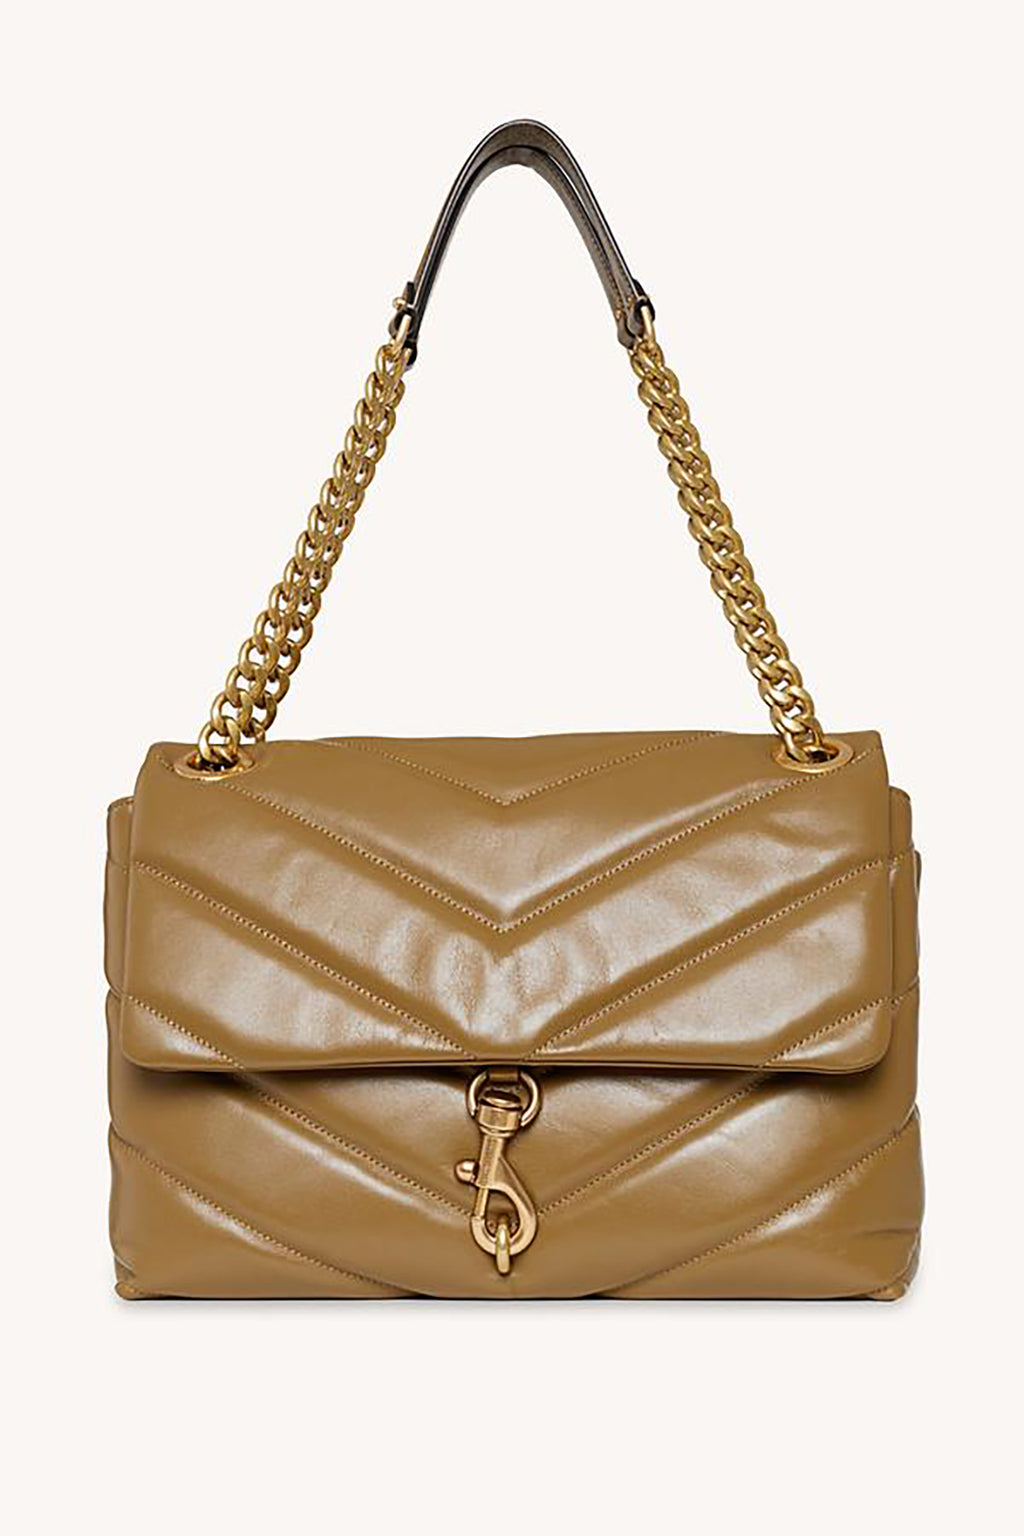 Edie Maxi Shoulder Bag